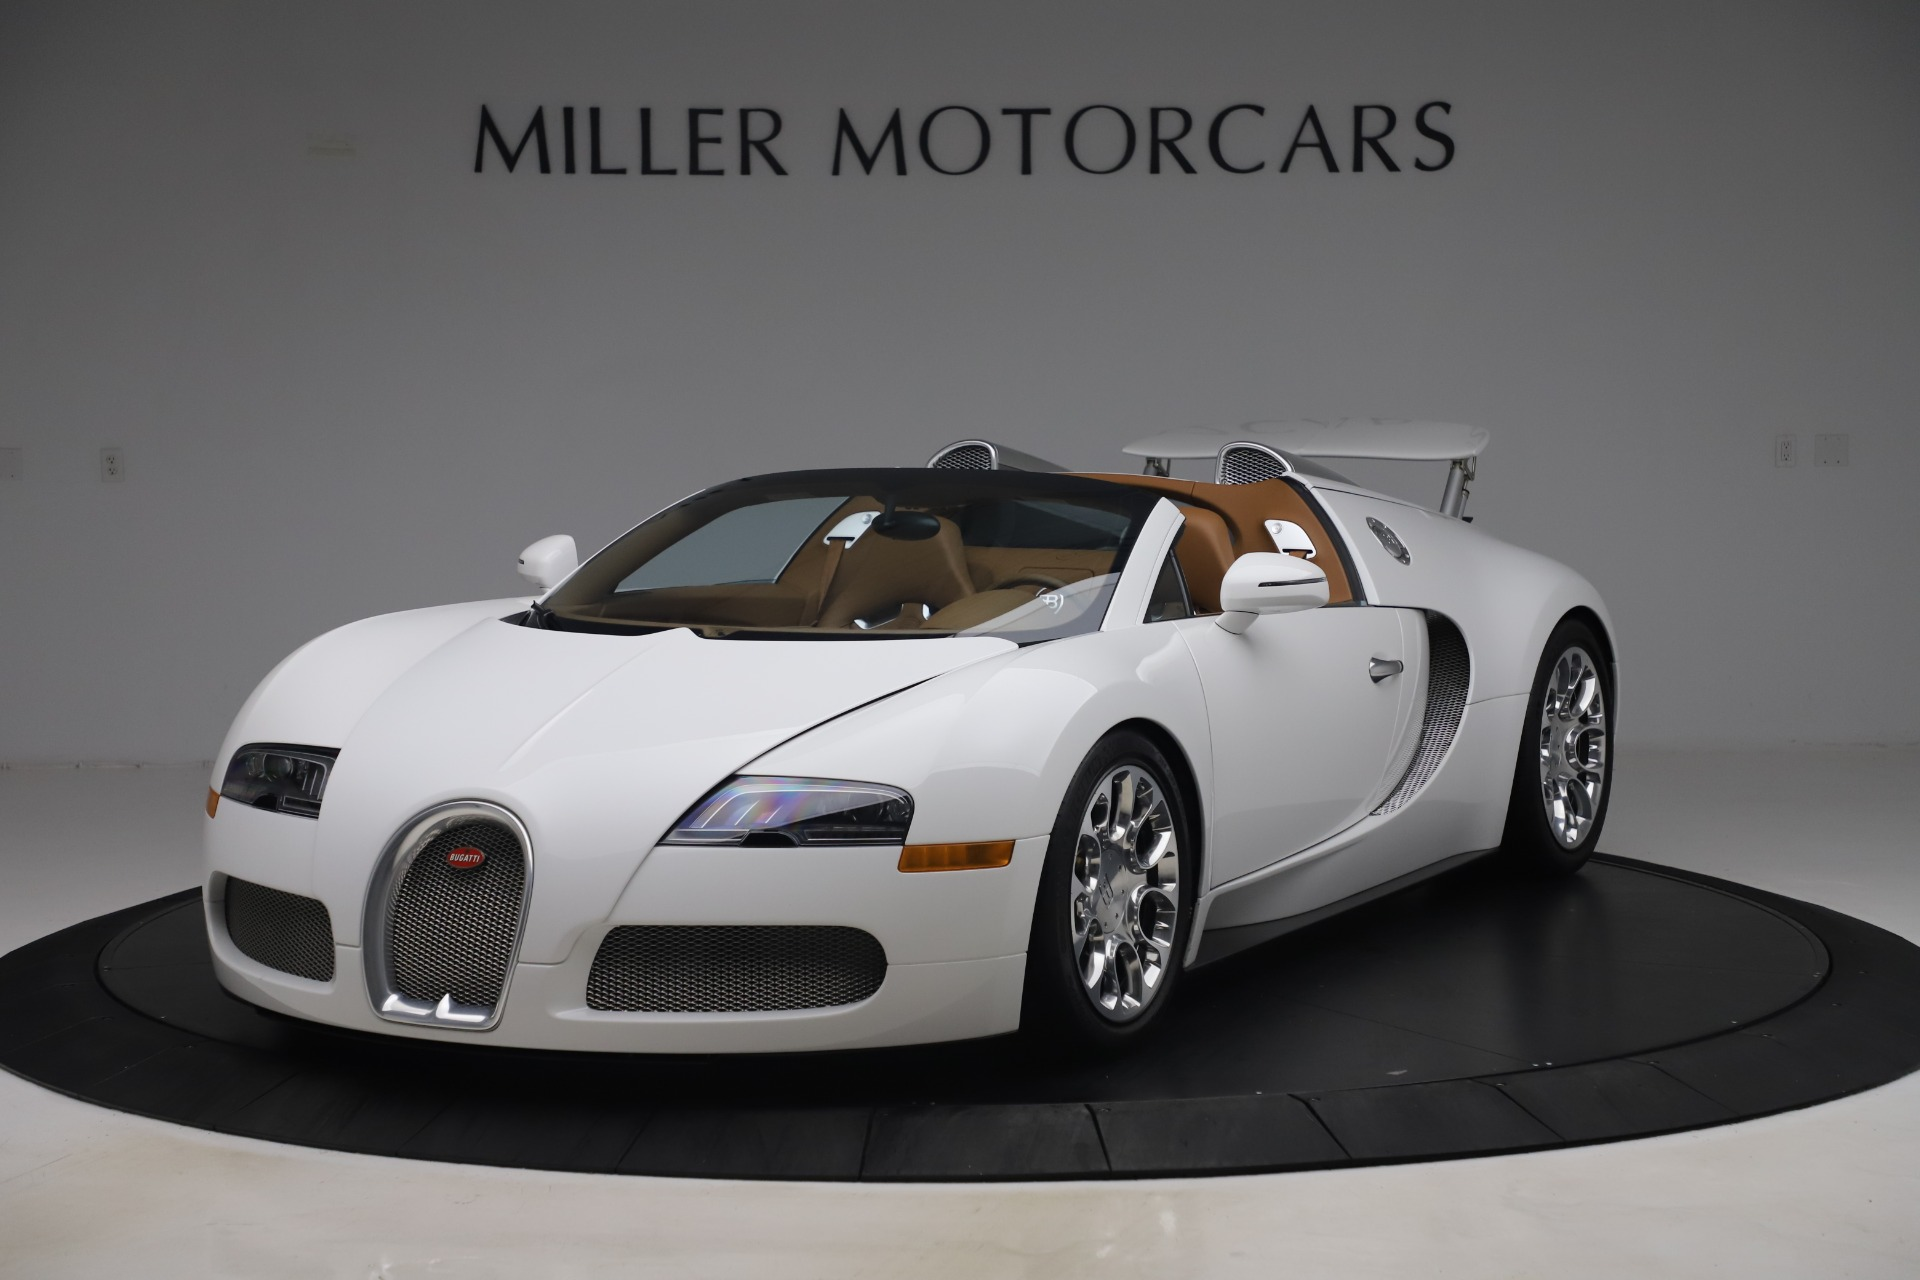 Used 2011 Bugatti Veyron 16.4 Grand Sport for sale Call for price at Bentley Greenwich in Greenwich CT 06830 1